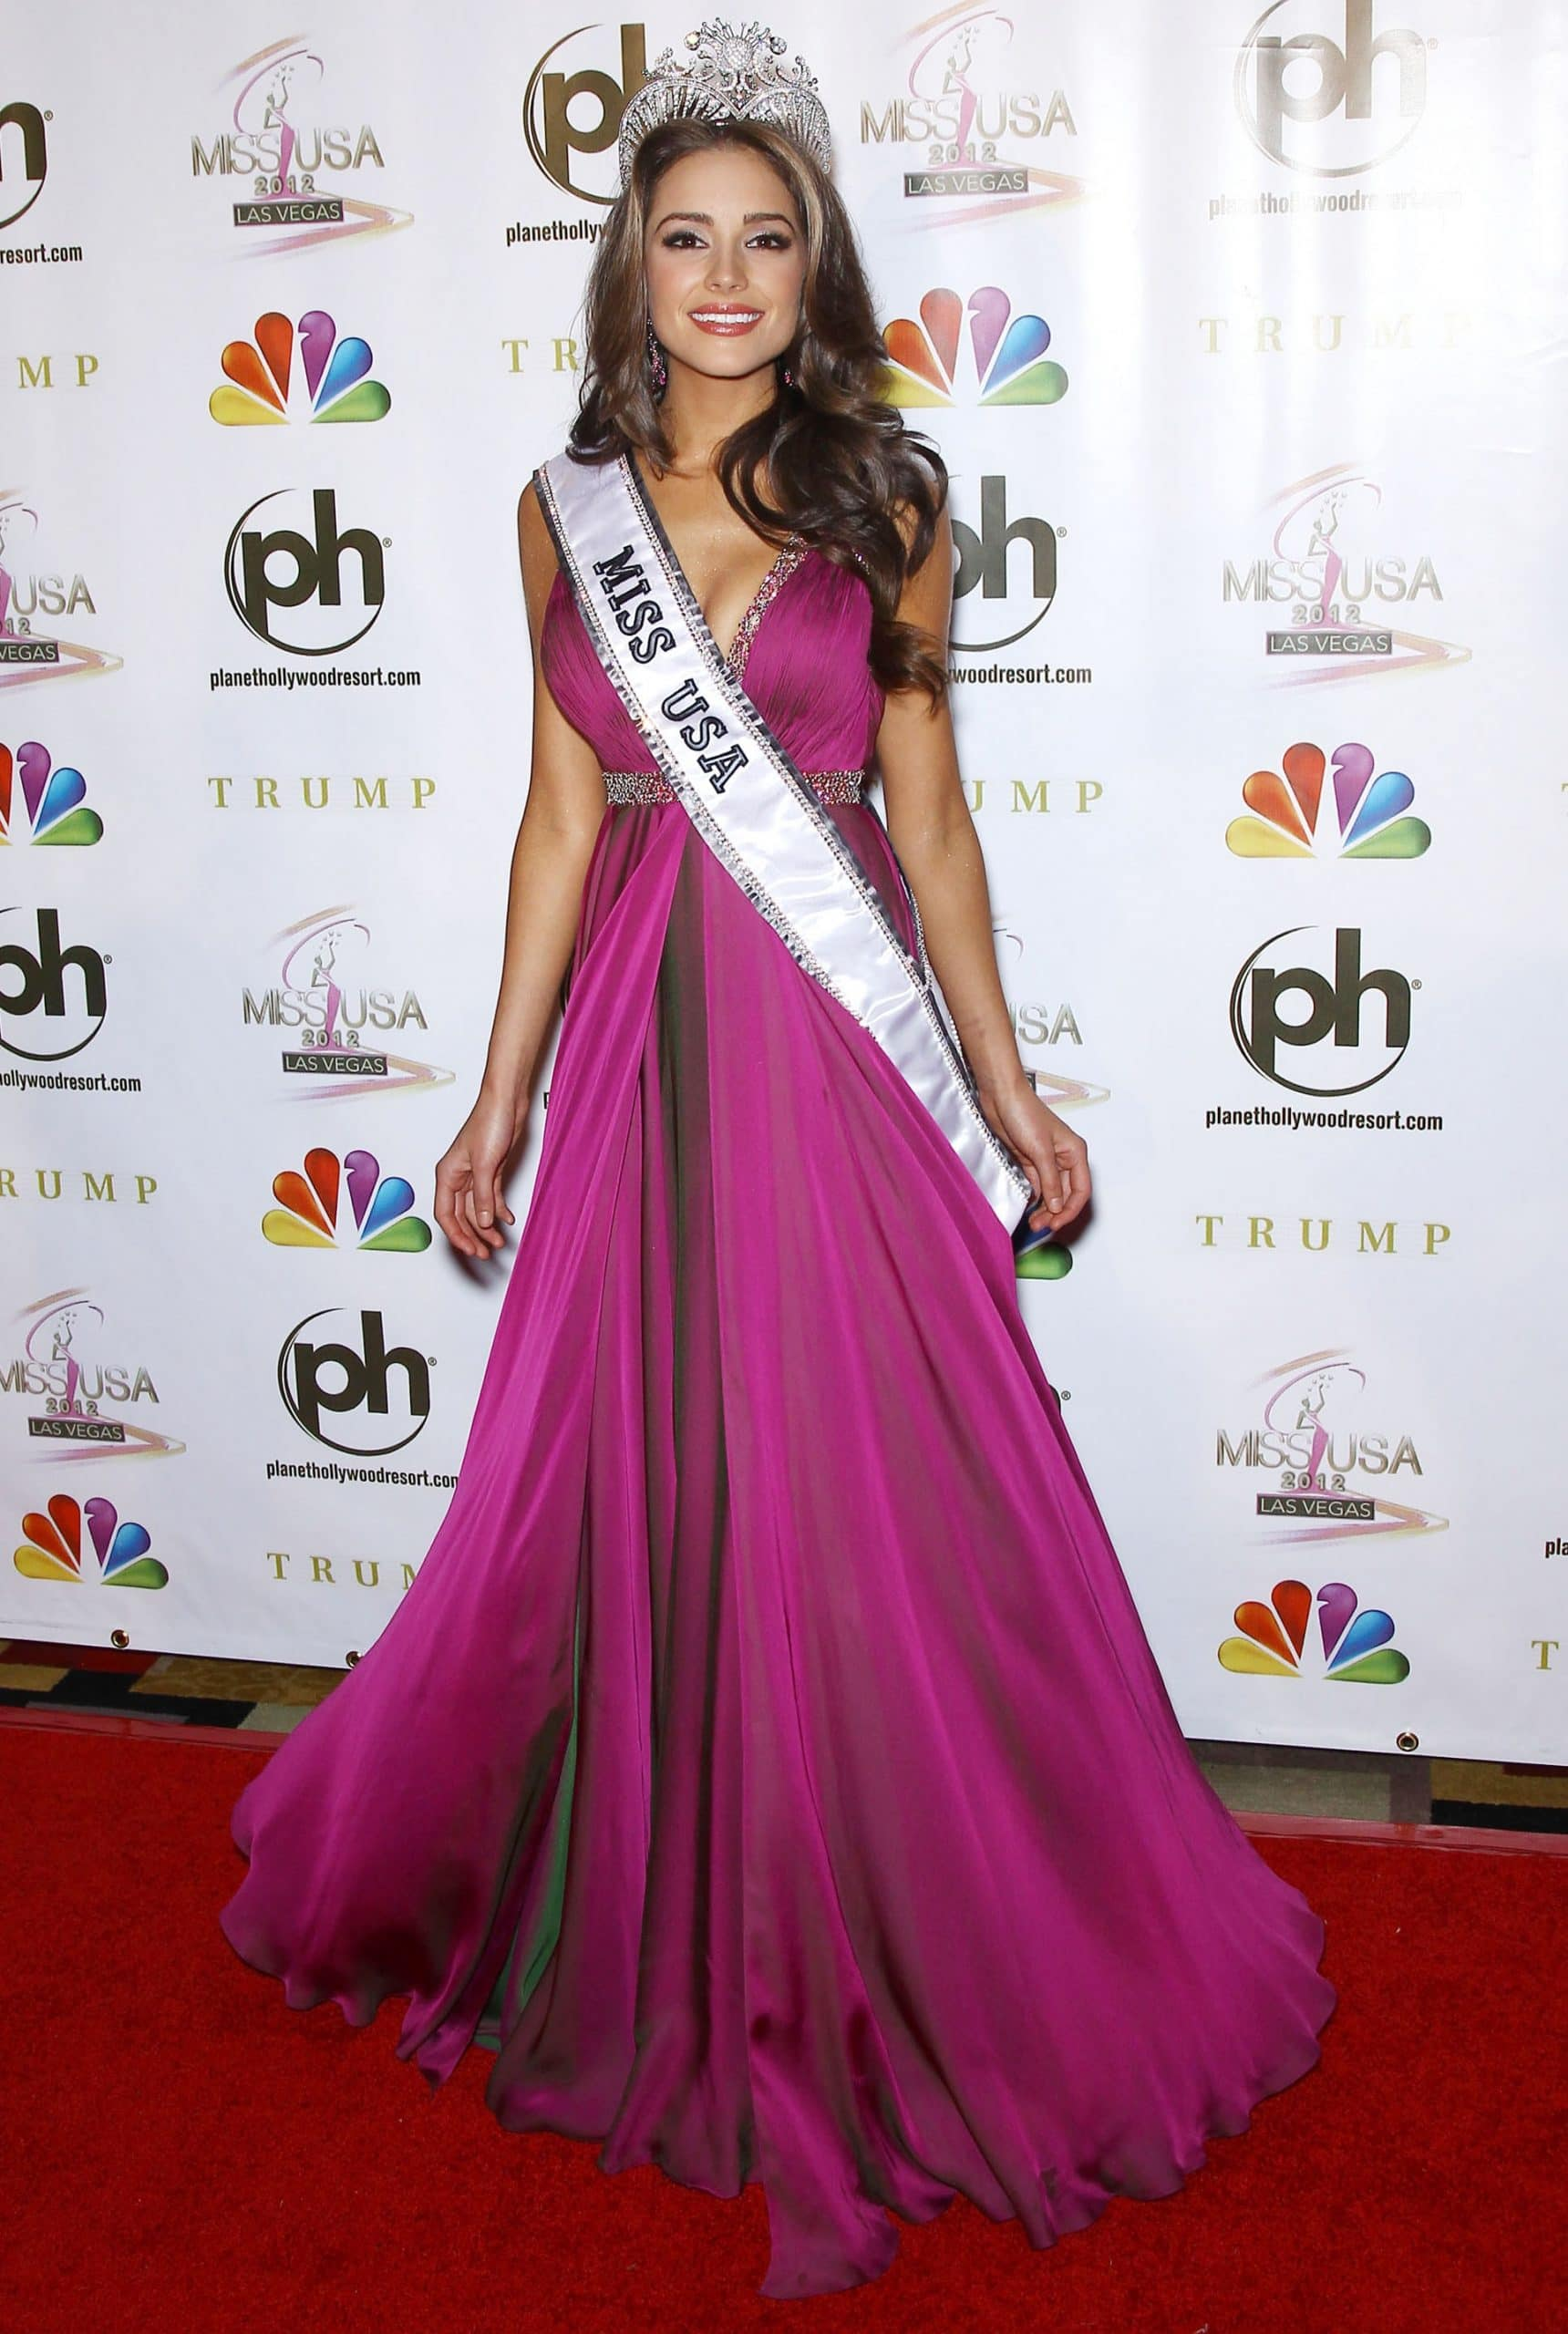 Miss USA 2012 Olivia Culpo attends the 2012 Miss USA post pageant press conference